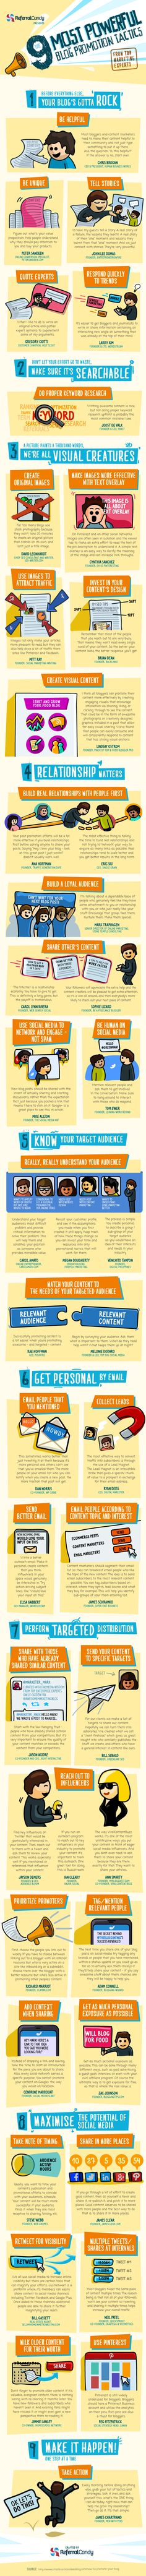 How to Promote Your Blog Effectively – Infographic | Boris Loukanov Web Mix